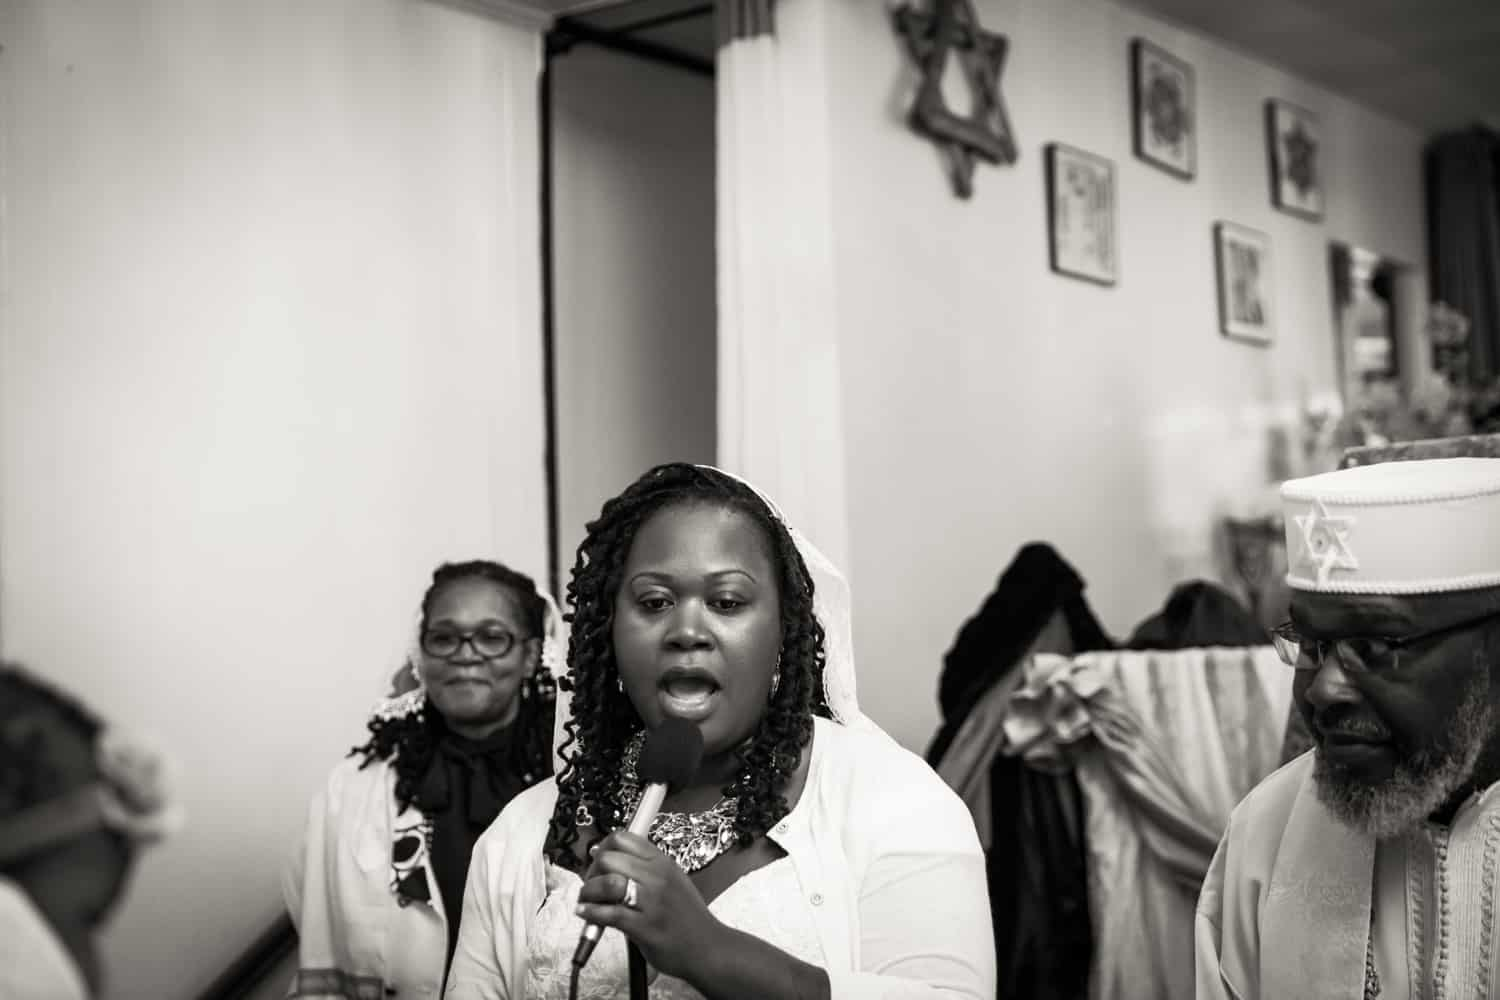 Black and white photo of woman singing during Jamaica christening